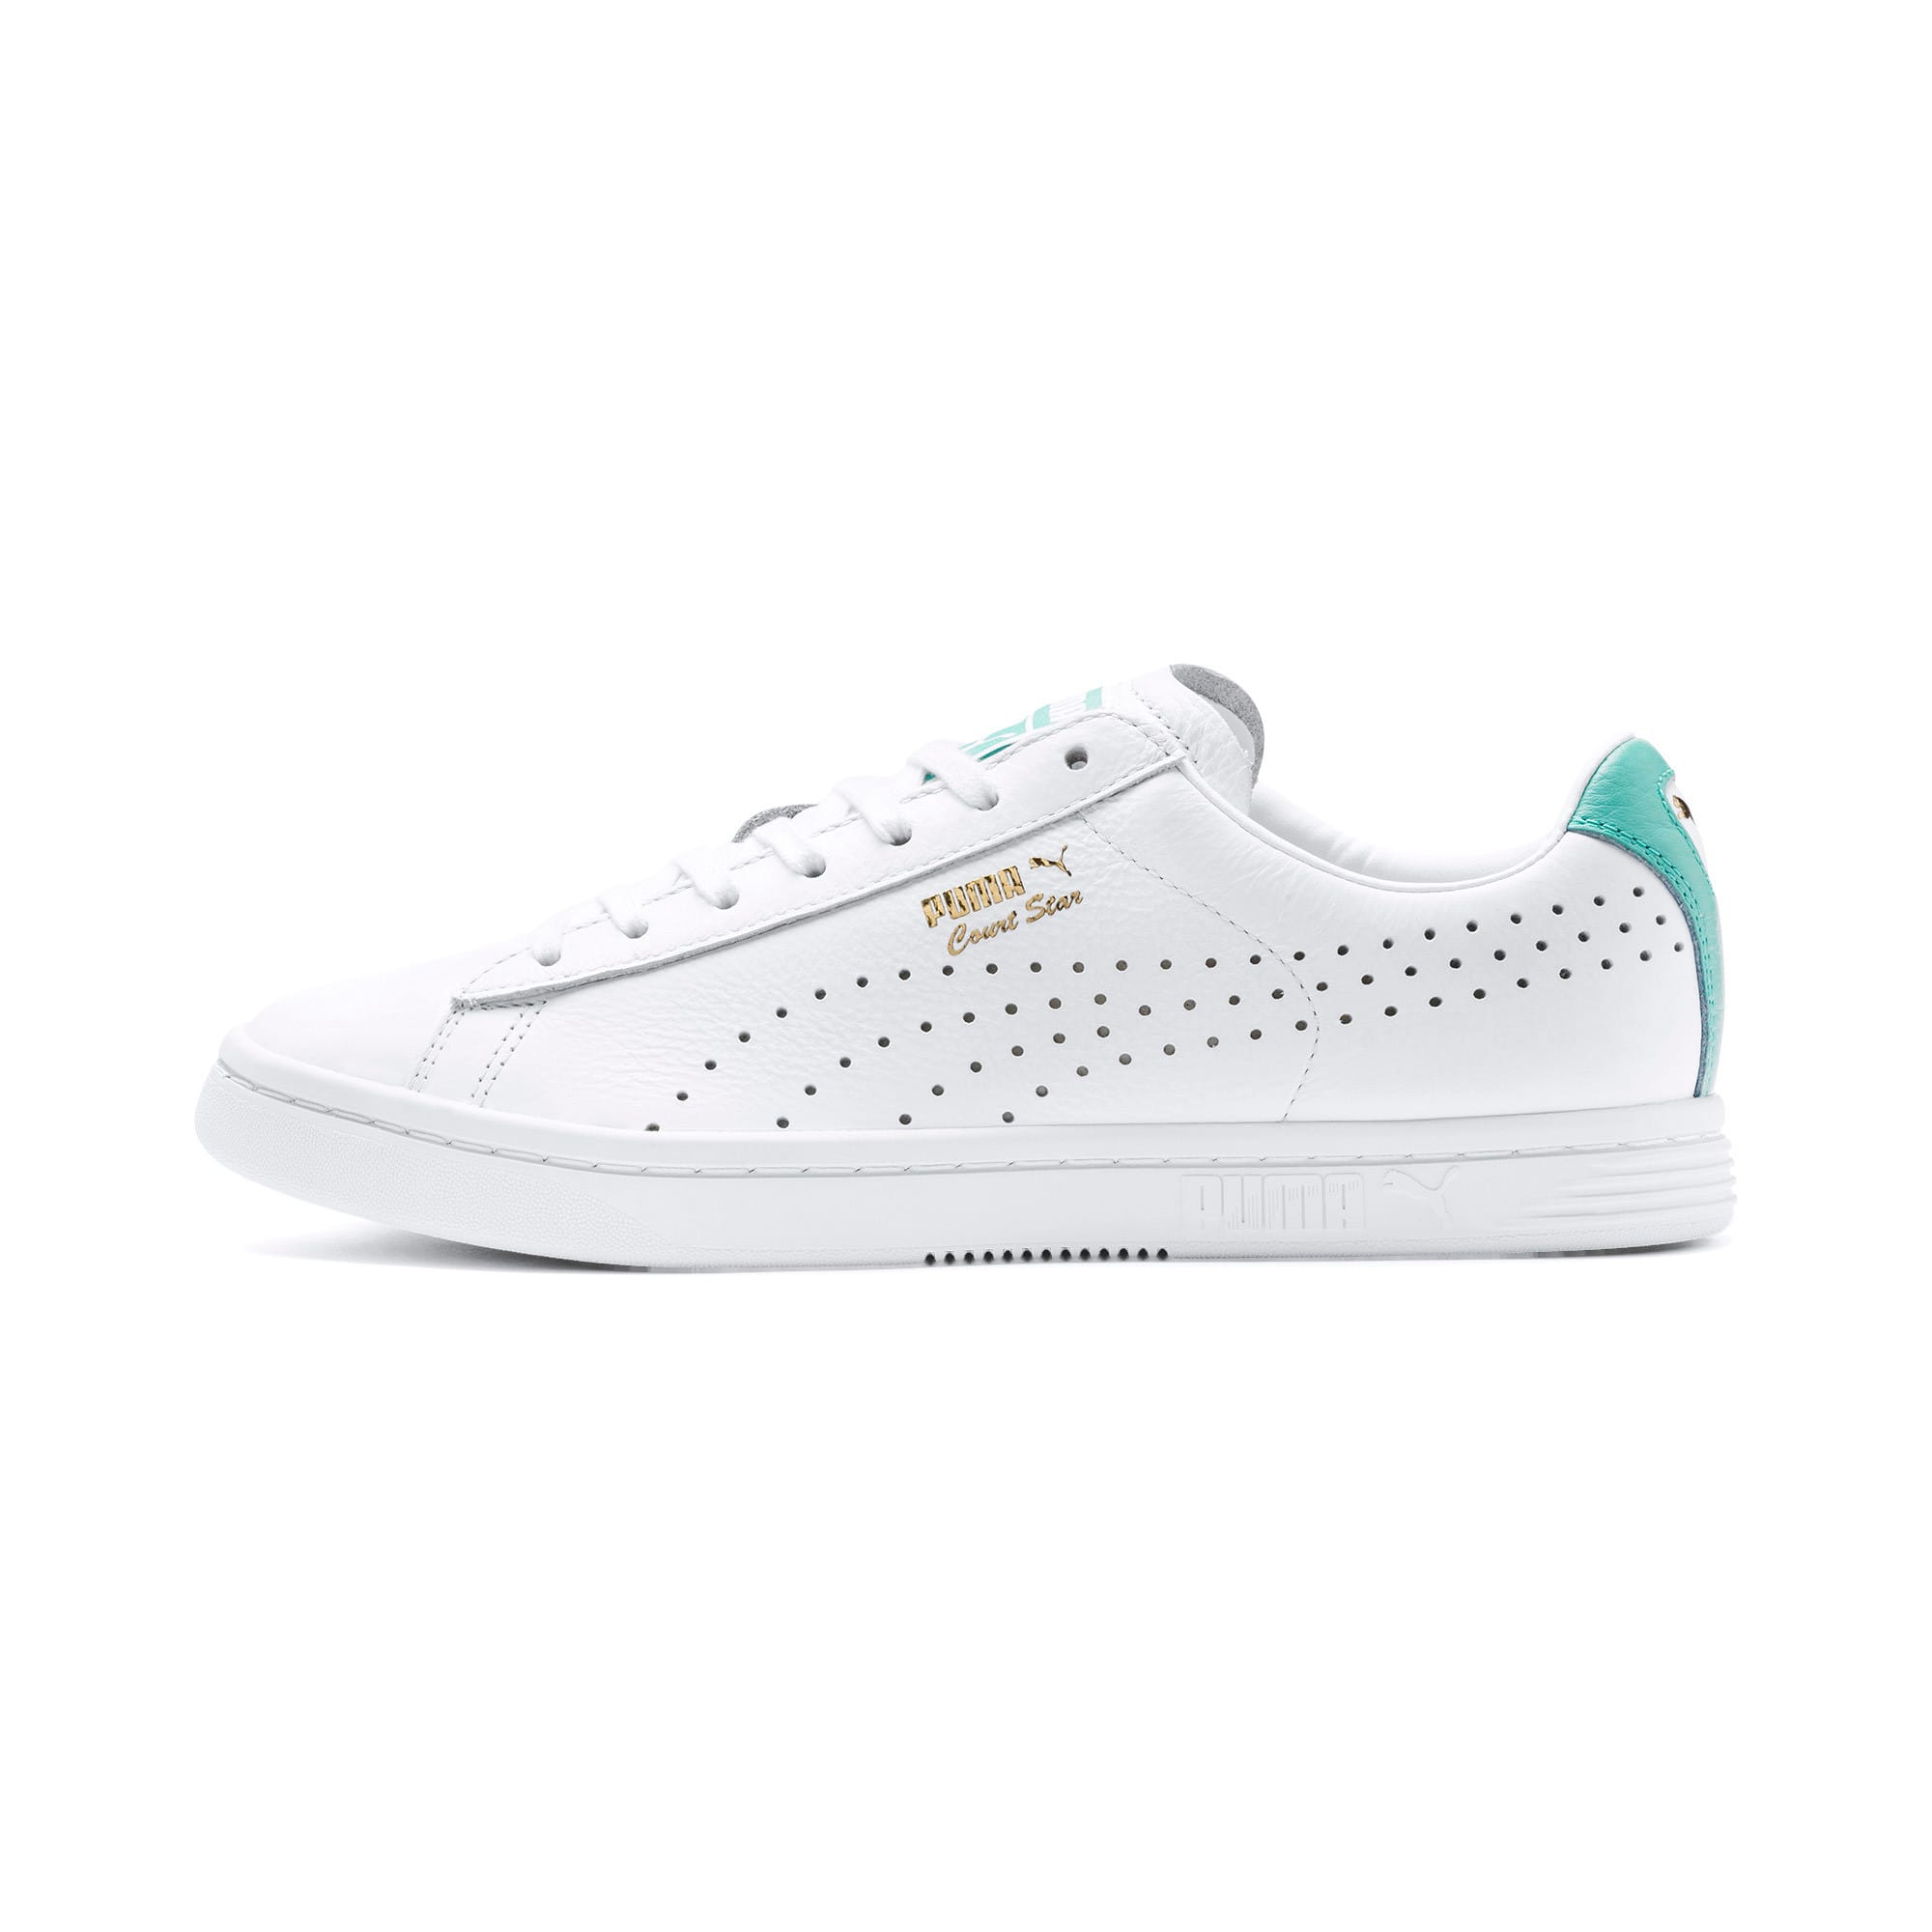 Thumbnail 1 of Court Star Sneakers, Puma White-Blue Turquoise, medium